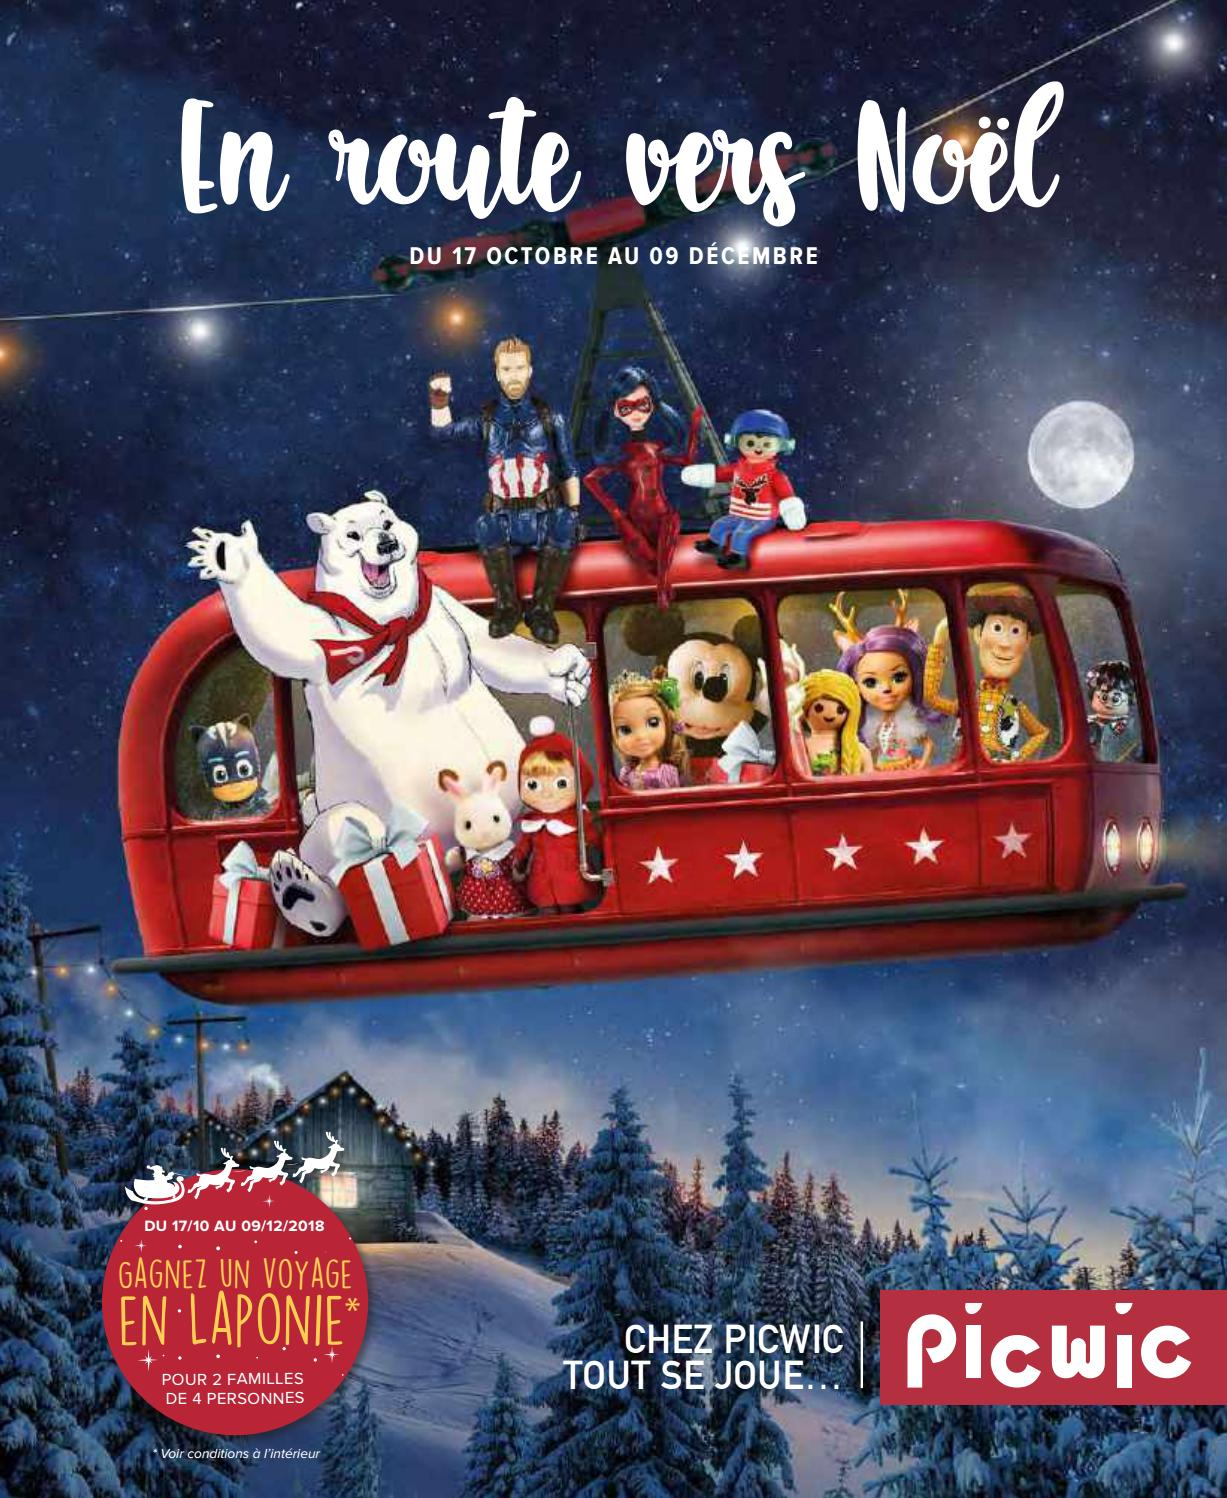 Catalogue Jouets Noel 2018 Picwic By Yvernault Issuu